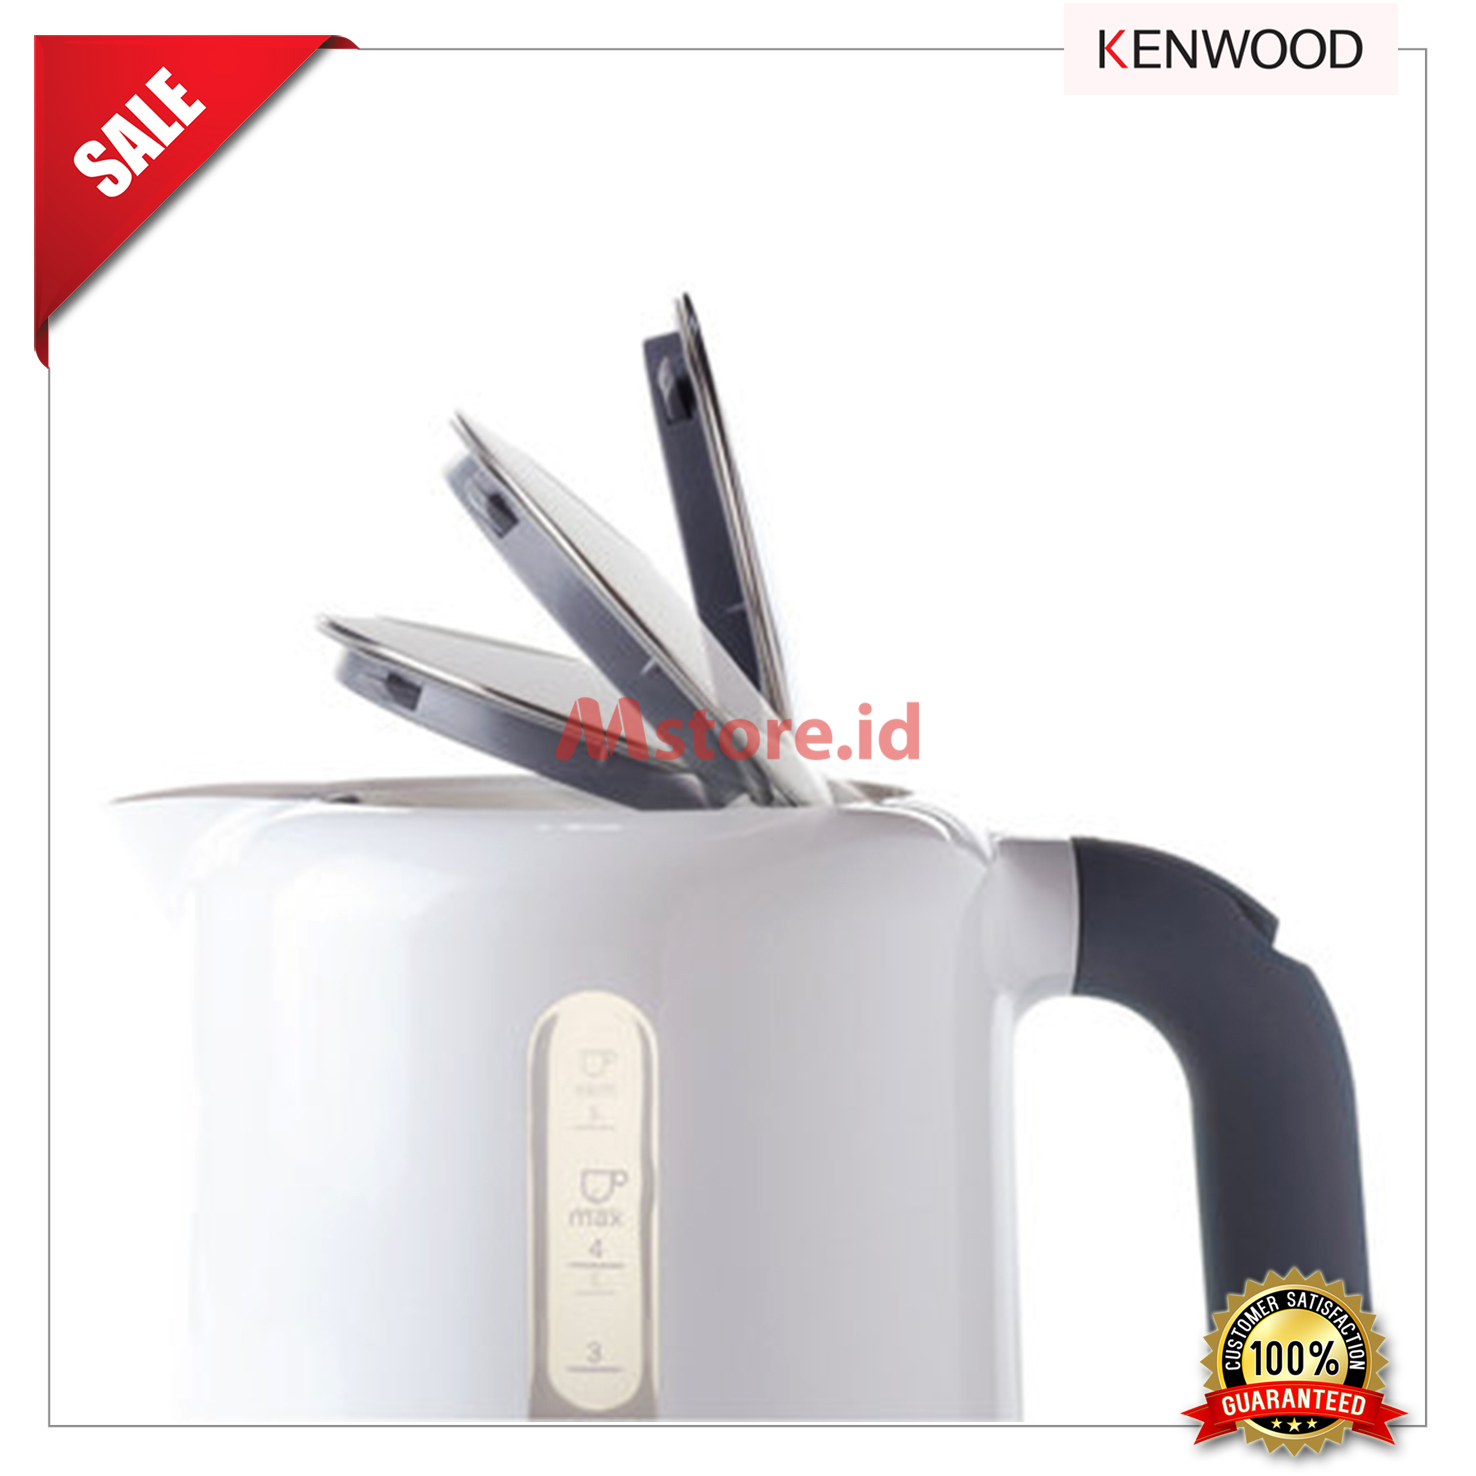 KENWOOD JKP350 KETTLEJUG WHITE_pemanas air_mstore id_multimayaka_3